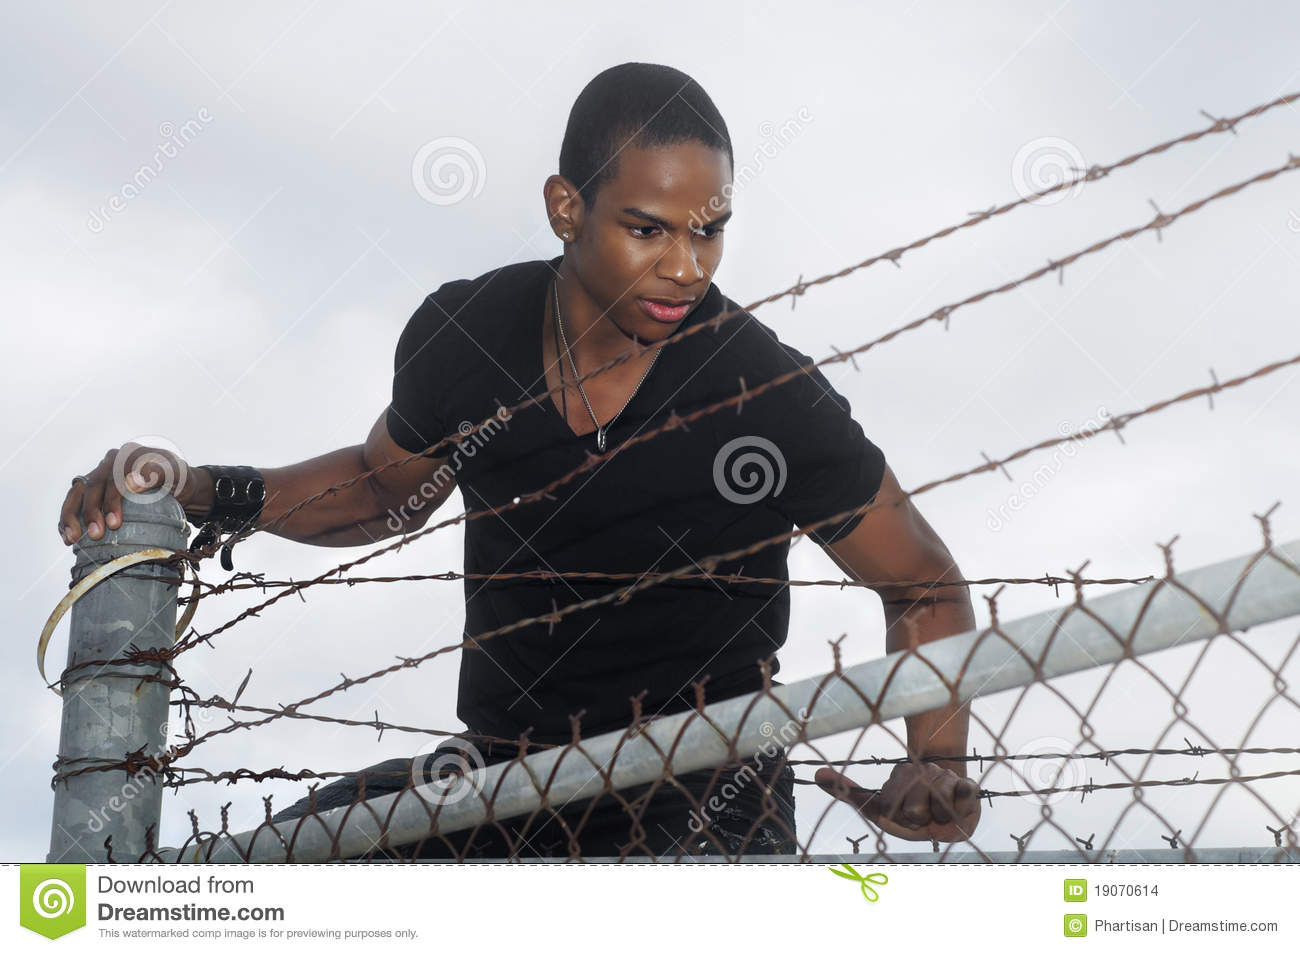 This Kids Parents Let Him Climb A Barbed-Wire Fence To Watch Soccer | The18